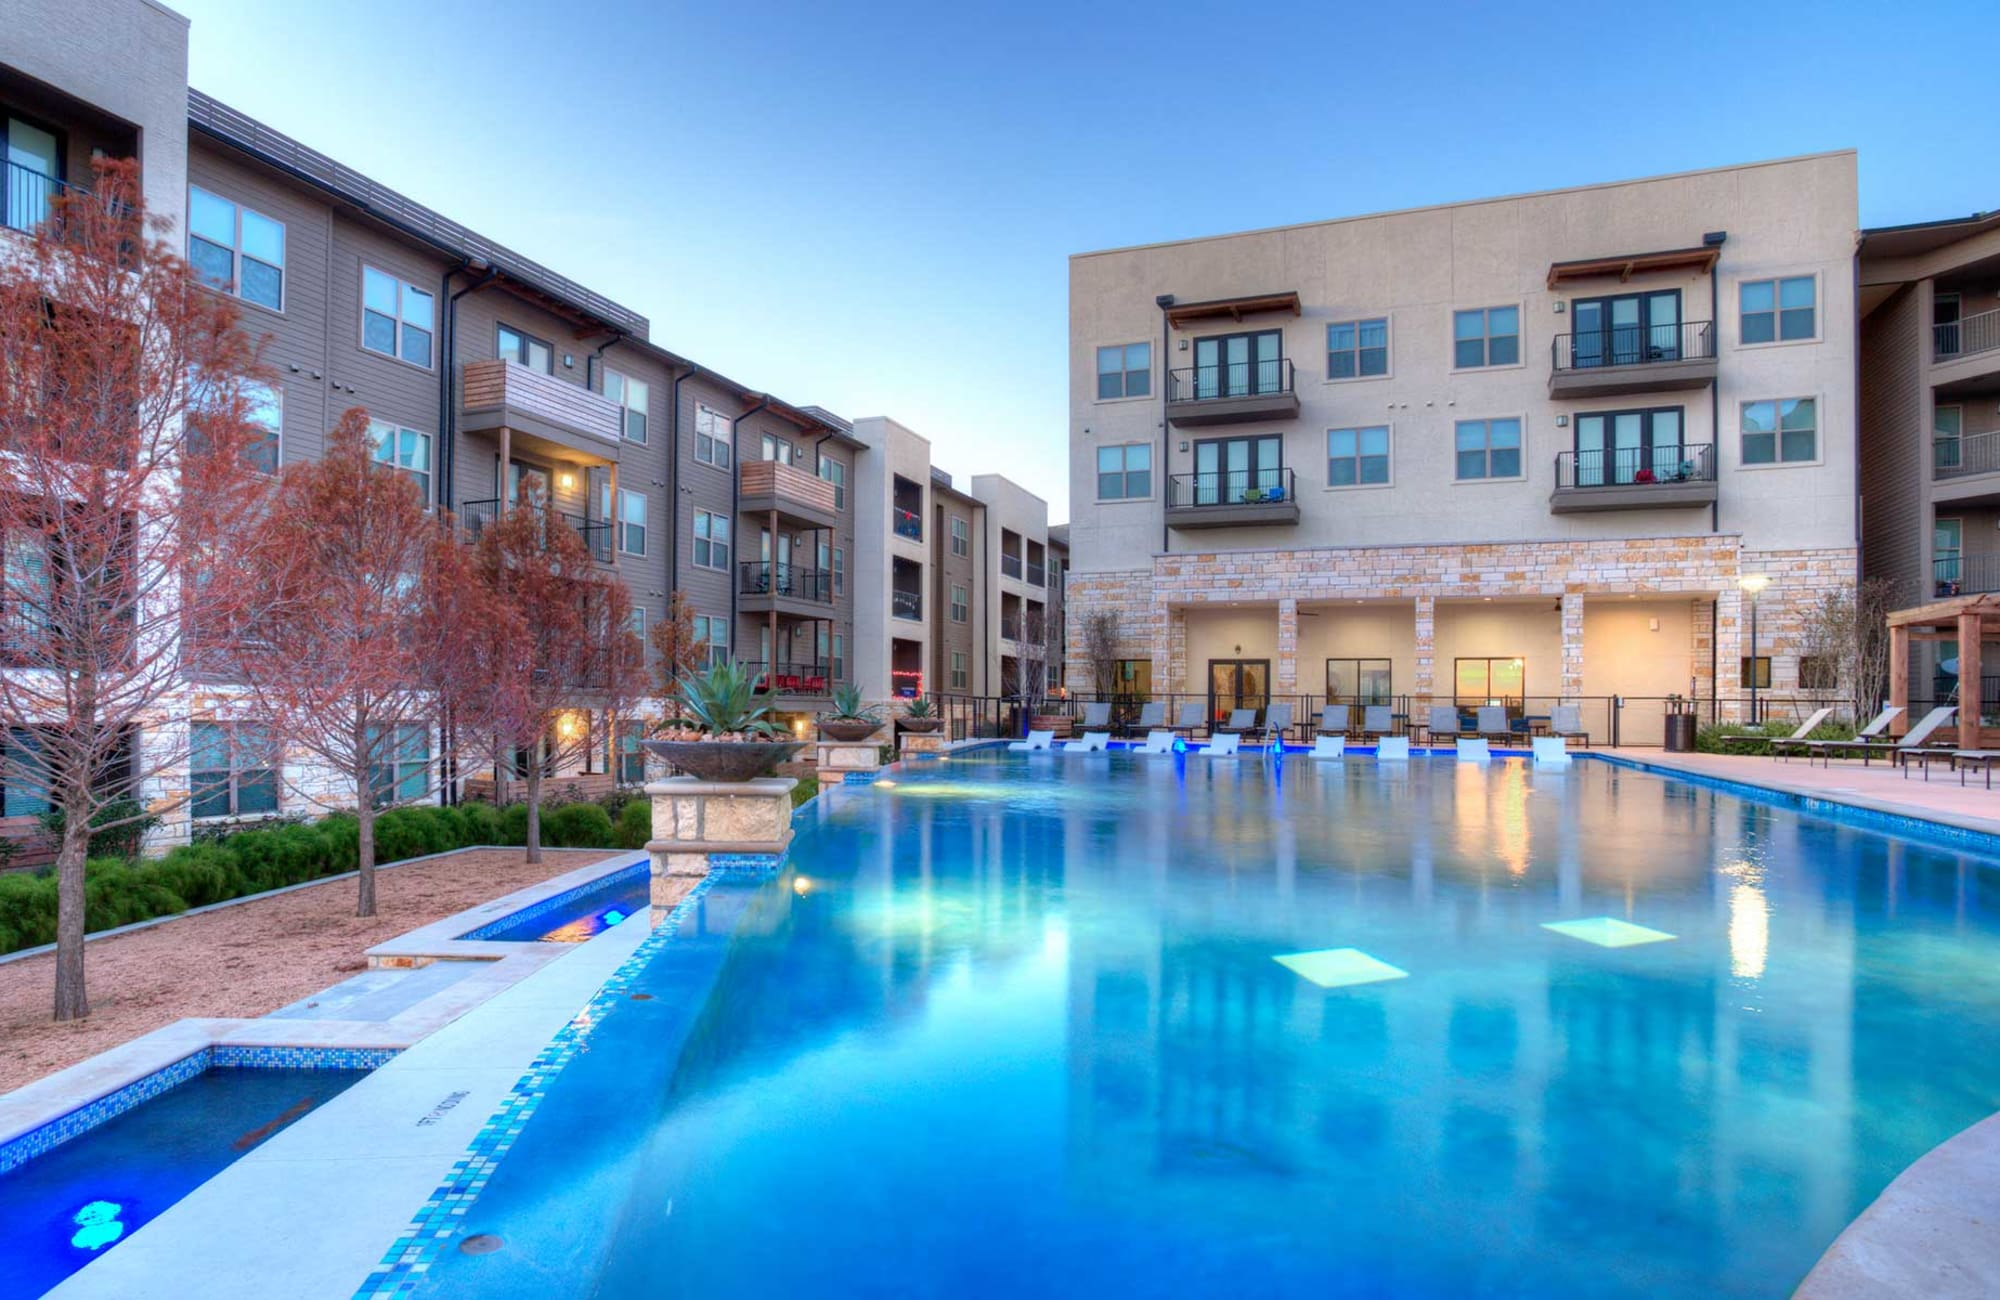 Apartments at Axis at The Rim in San Antonio, Texas